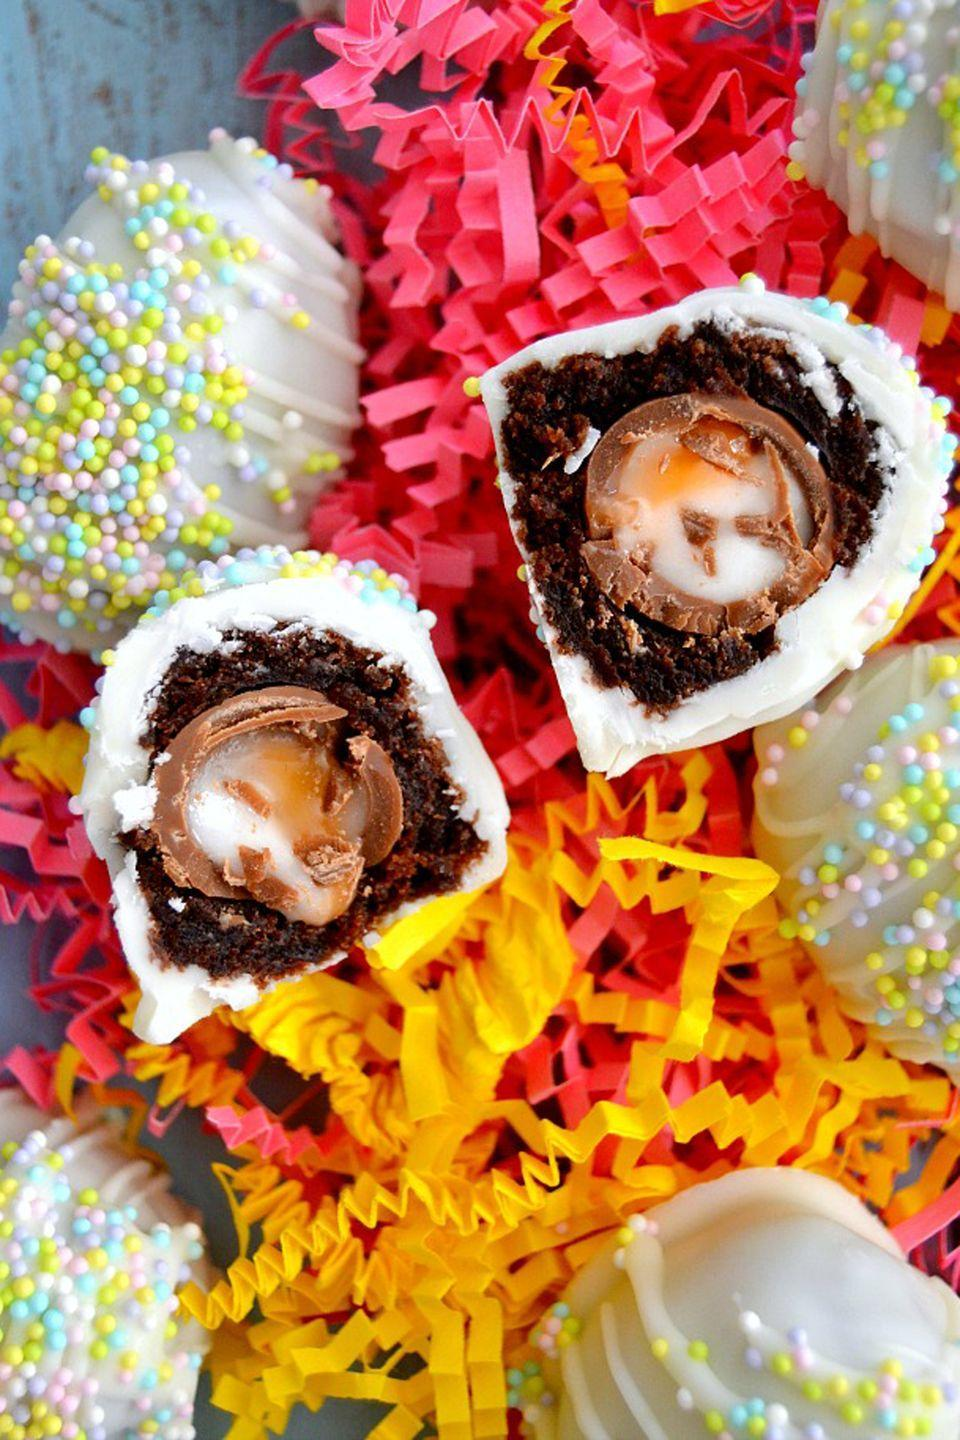 """<p>Cover a Cadbury Creme Egg with brownie batter and a layer of white chocolate for a super-sweet bite. </p><p><em><a href=""""https://thedomesticrebel.com/2015/03/20/cadbury-creme-egg-brownie-bombs/"""" rel=""""nofollow noopener"""" target=""""_blank"""" data-ylk=""""slk:Get the recipe from The Domestic Rebel »"""" class=""""link rapid-noclick-resp"""">Get the recipe from The Domestic Rebel »</a></em></p>"""